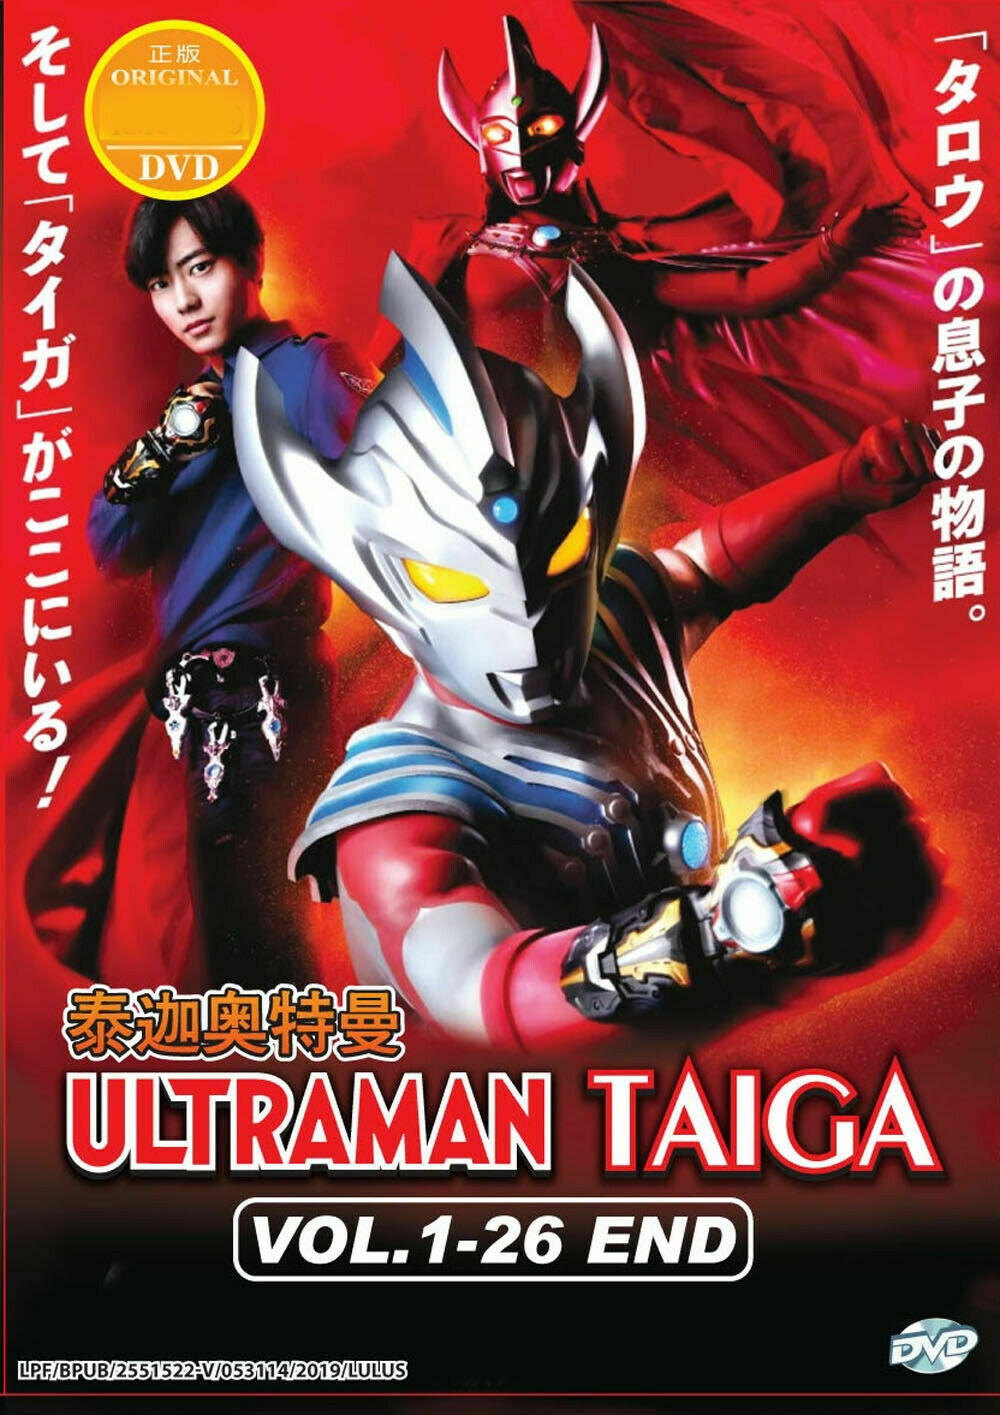 Ultraman Taiga DVD (Vol.1-26 end) with English Subtitle Ship From USA